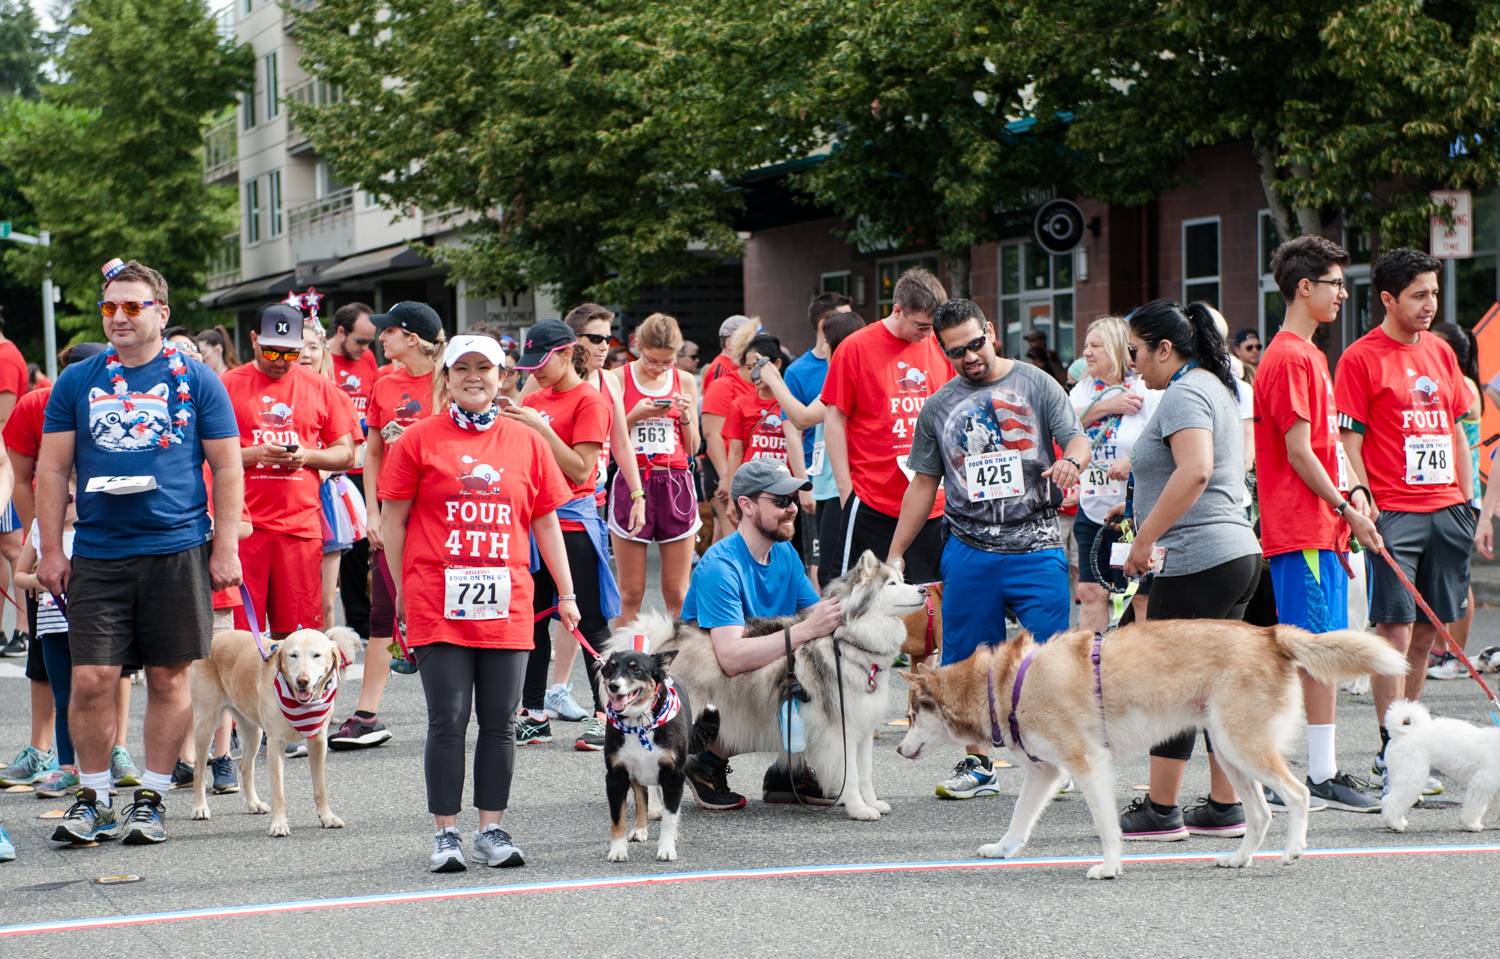 A costume contest, dog walk, free watermelons, bananas and adoptable pets? We can think of no better way to celebrate the Fourth of July. See highlights from this year's Four on the Fourth Dog Jog & Walk, with a portion of proceeds benefitting Seattle Humane Bellevue. (Image: Elizabeth Crook / Seattle Refined){ }